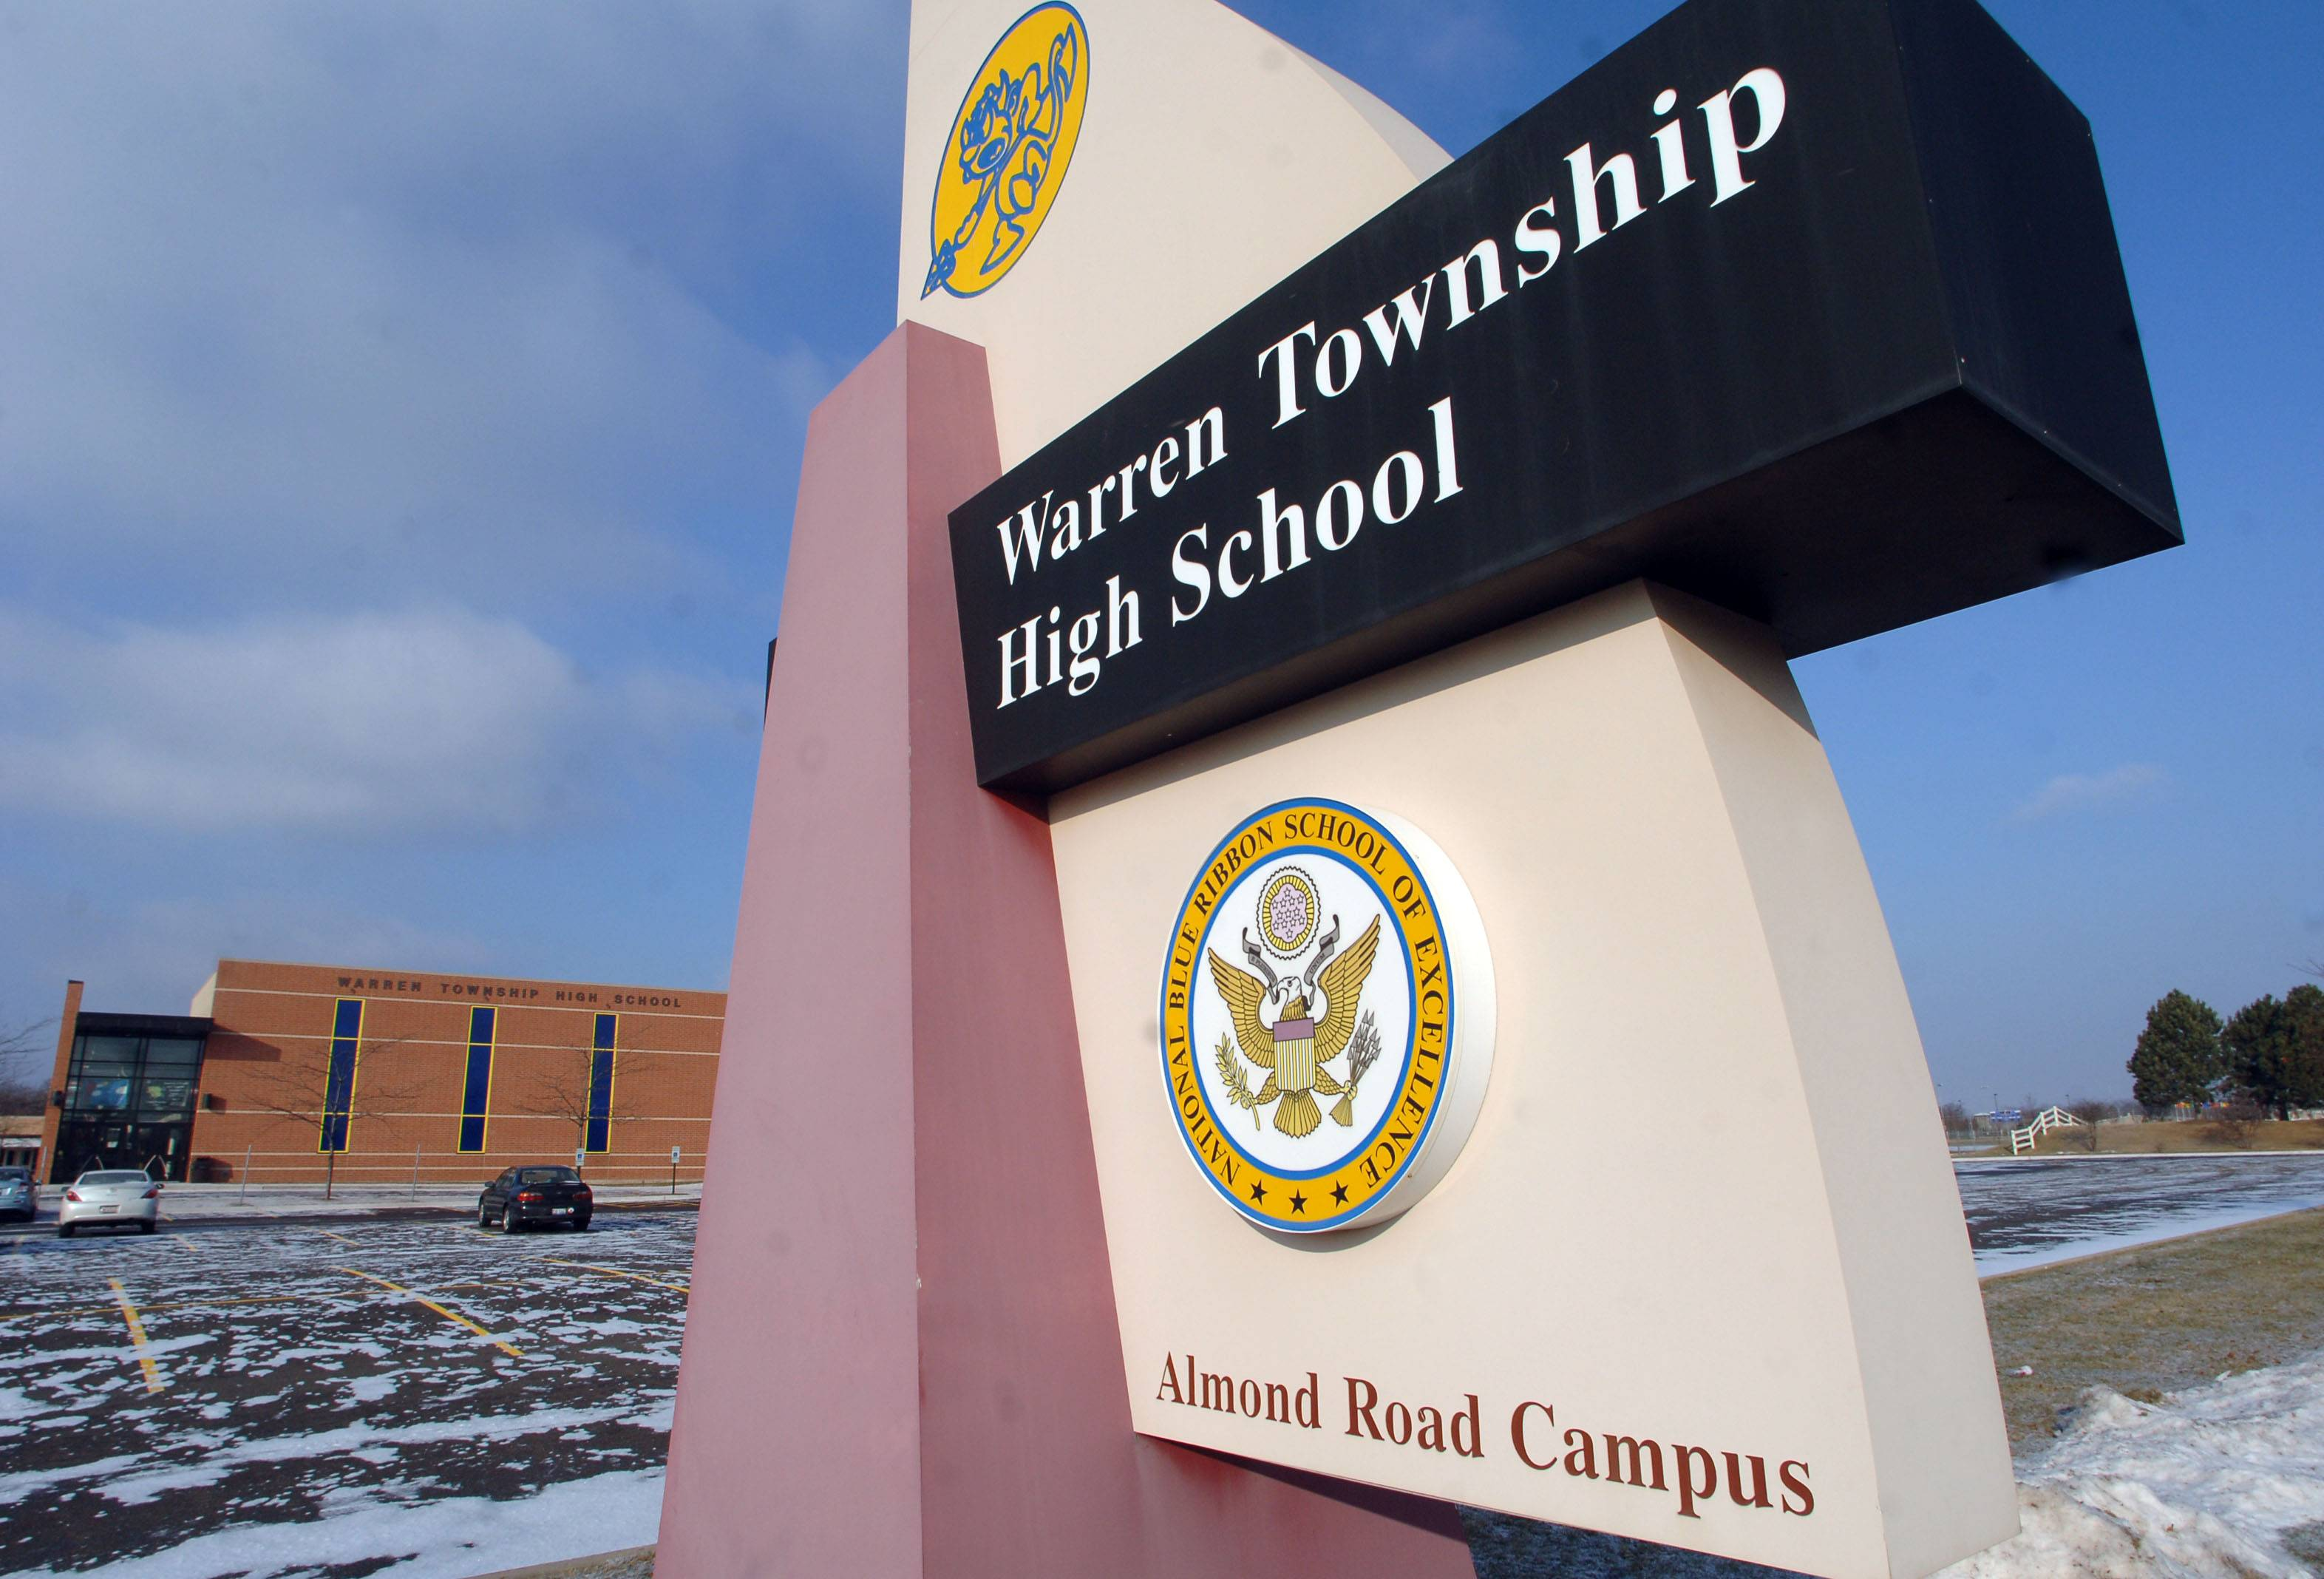 Warren Township High School District 121 will host a public hearing Tuesday night about borrowing $23 million to pay for projects, including a new roof for Warren Township High School's Almond Road campus.